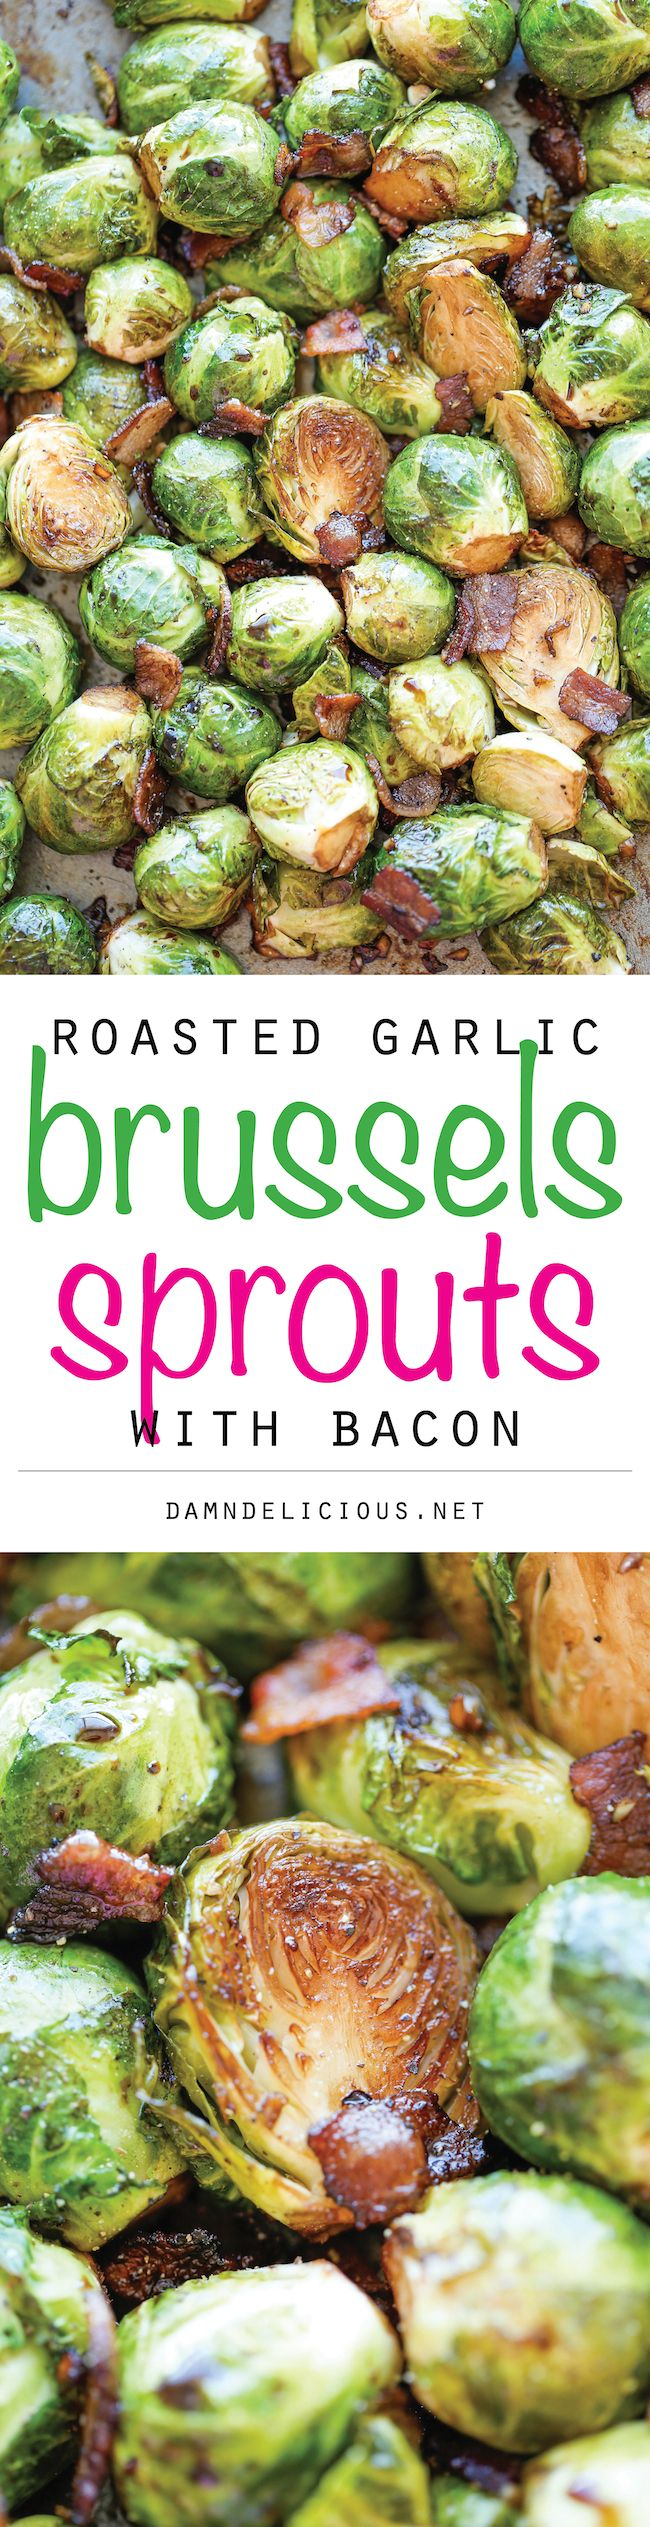 Roasted Garlic Brussels Sprouts - The best garlic brussels sprouts ever, made with garlic and crisp bacon goodness! Quarter the brussels sprouts, or cook them longer. But great flavor.